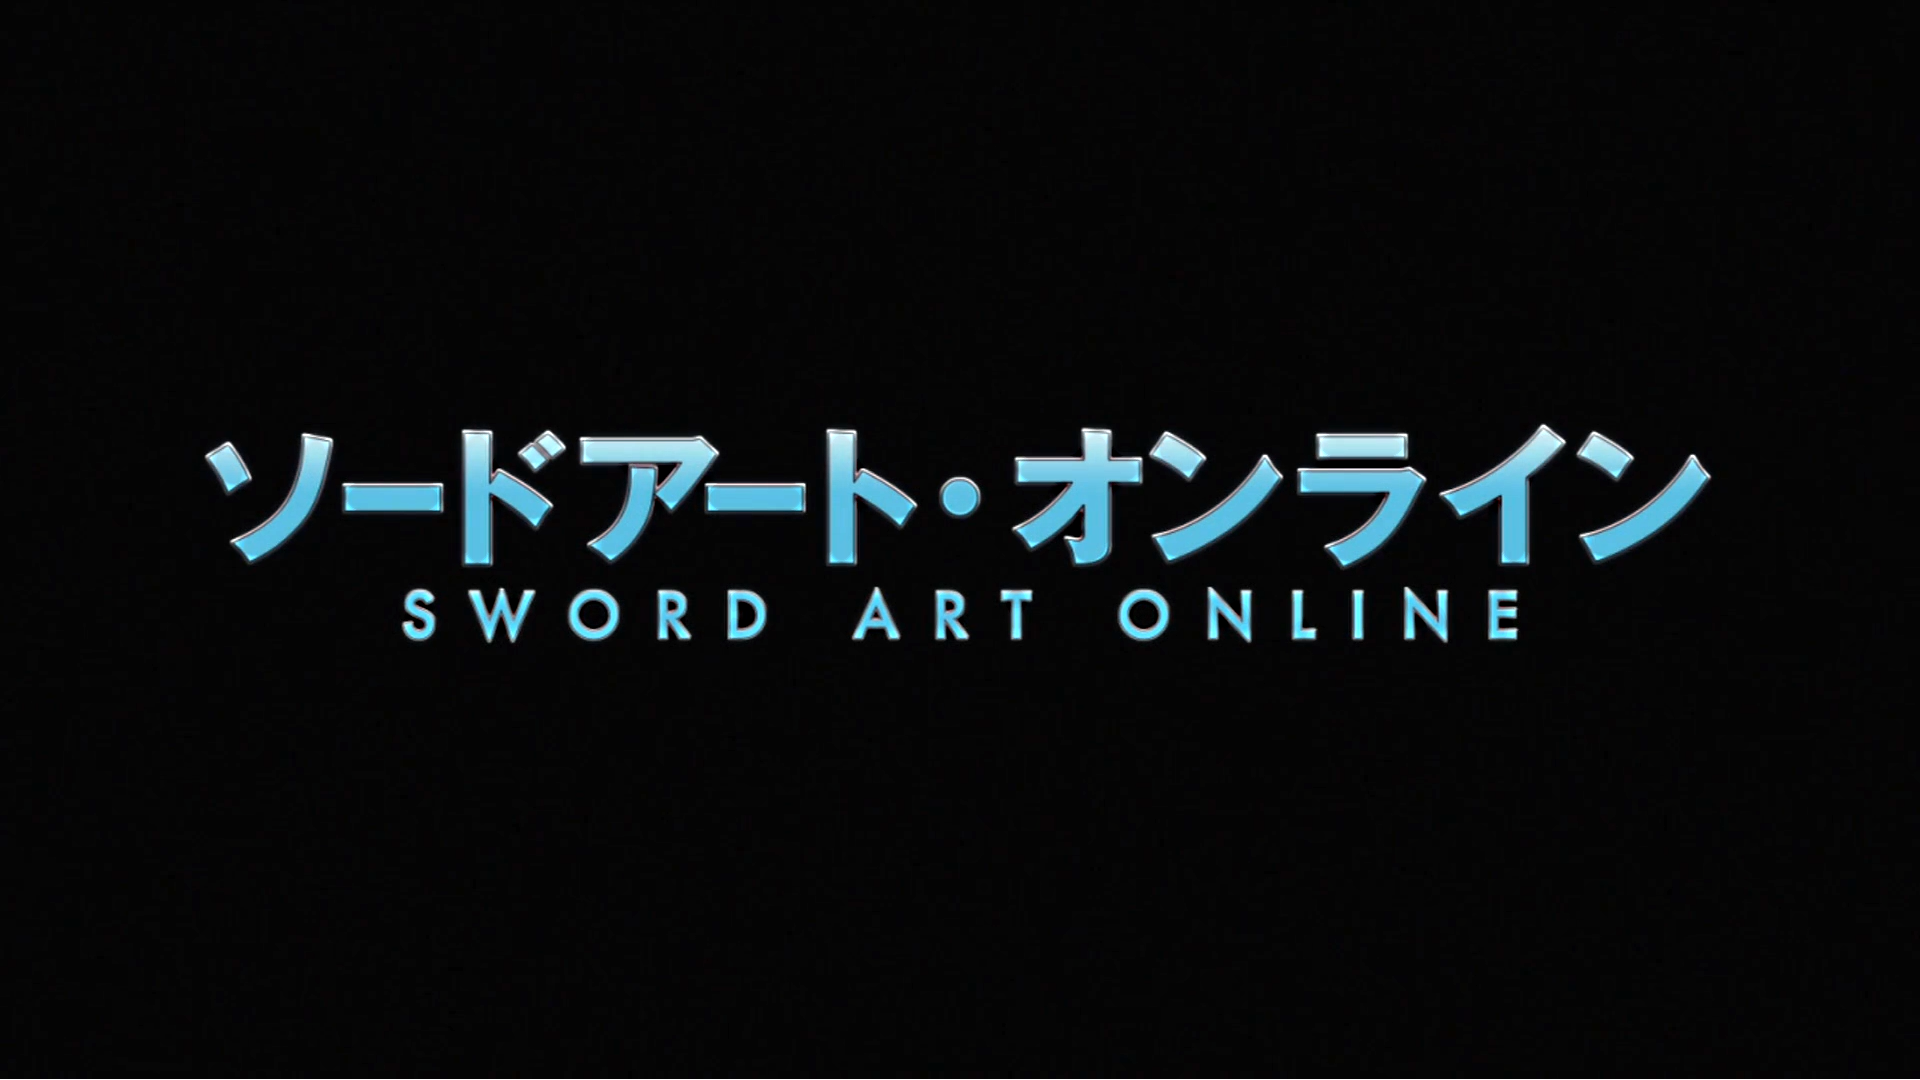 Sword Art Online Wallpapers Reddit Funny